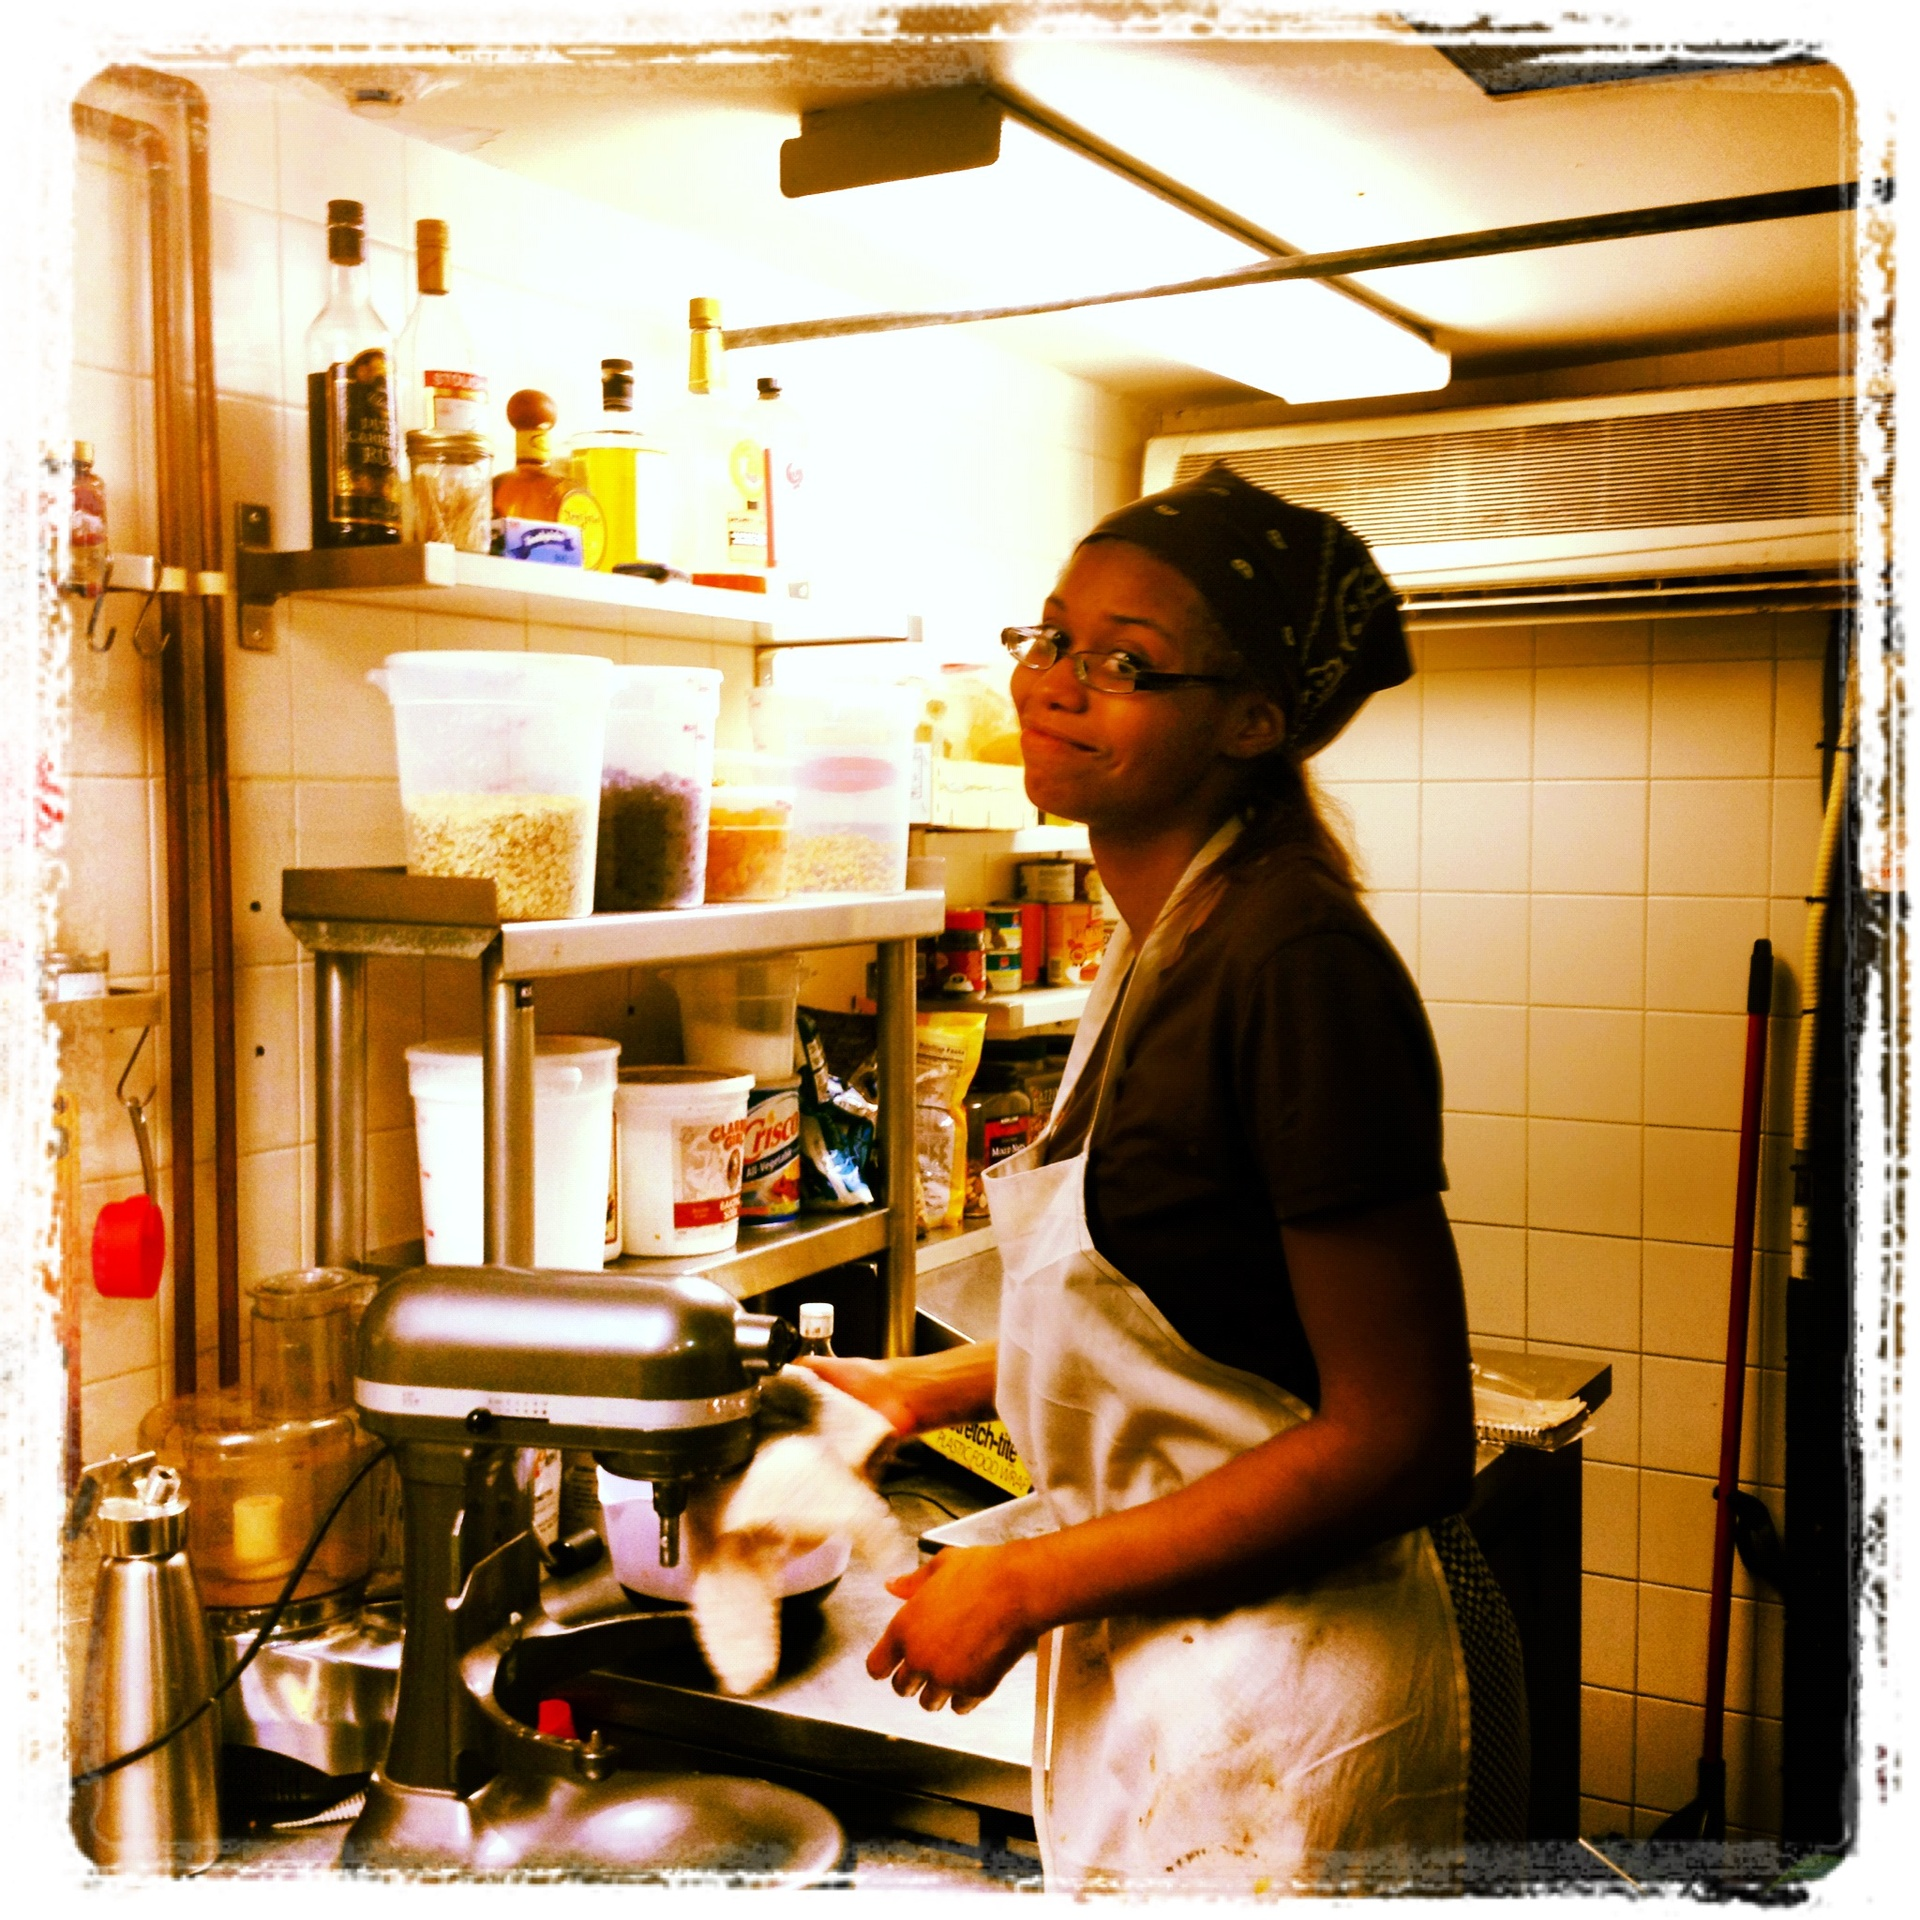 Our head chocolatier, Alex